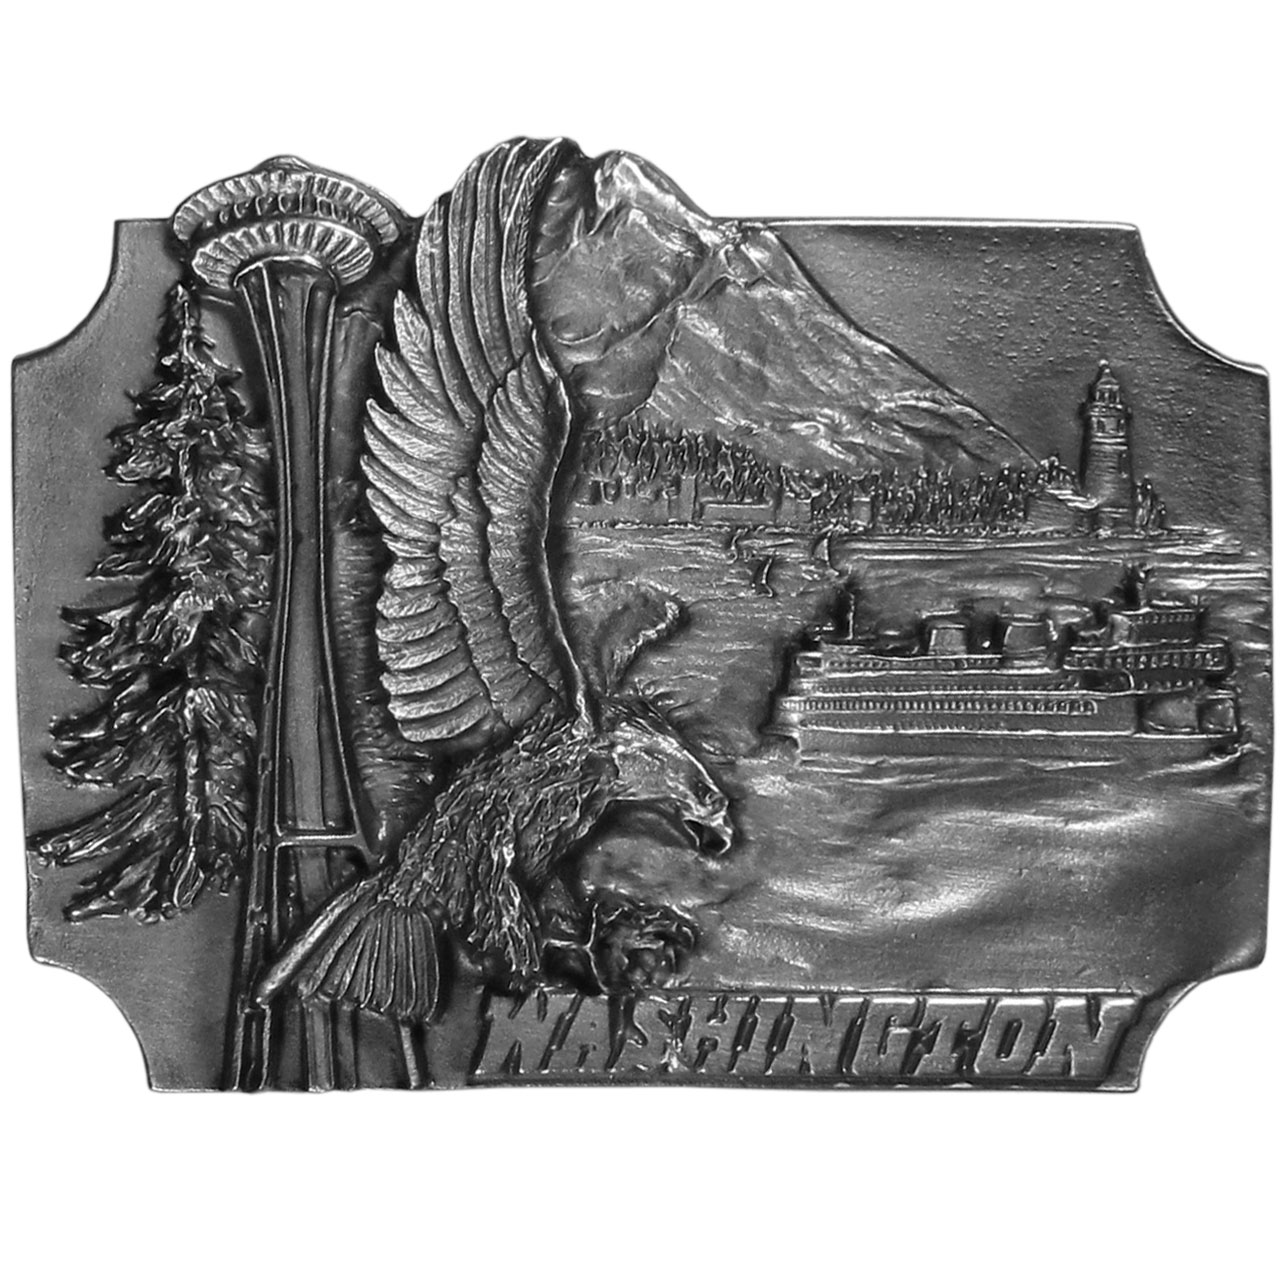 "Washington Antiqued Belt Buckle - ""A buckle to celebrate the state of Washington.  Buckle has images of Mt. Rainier, Seattle, a ferry on the Puget Sound, a bald eagle, the Space Needle, a lighthouse and of course an evergreen tree.  This exquisitely carved buckle is made of fully cast metal with a standard bale that fits up to 2"""" belts.  Siskiyou's unique buckle designs often become collector's items and are unequaled with the best craftsmanship.  Made in the USA."""